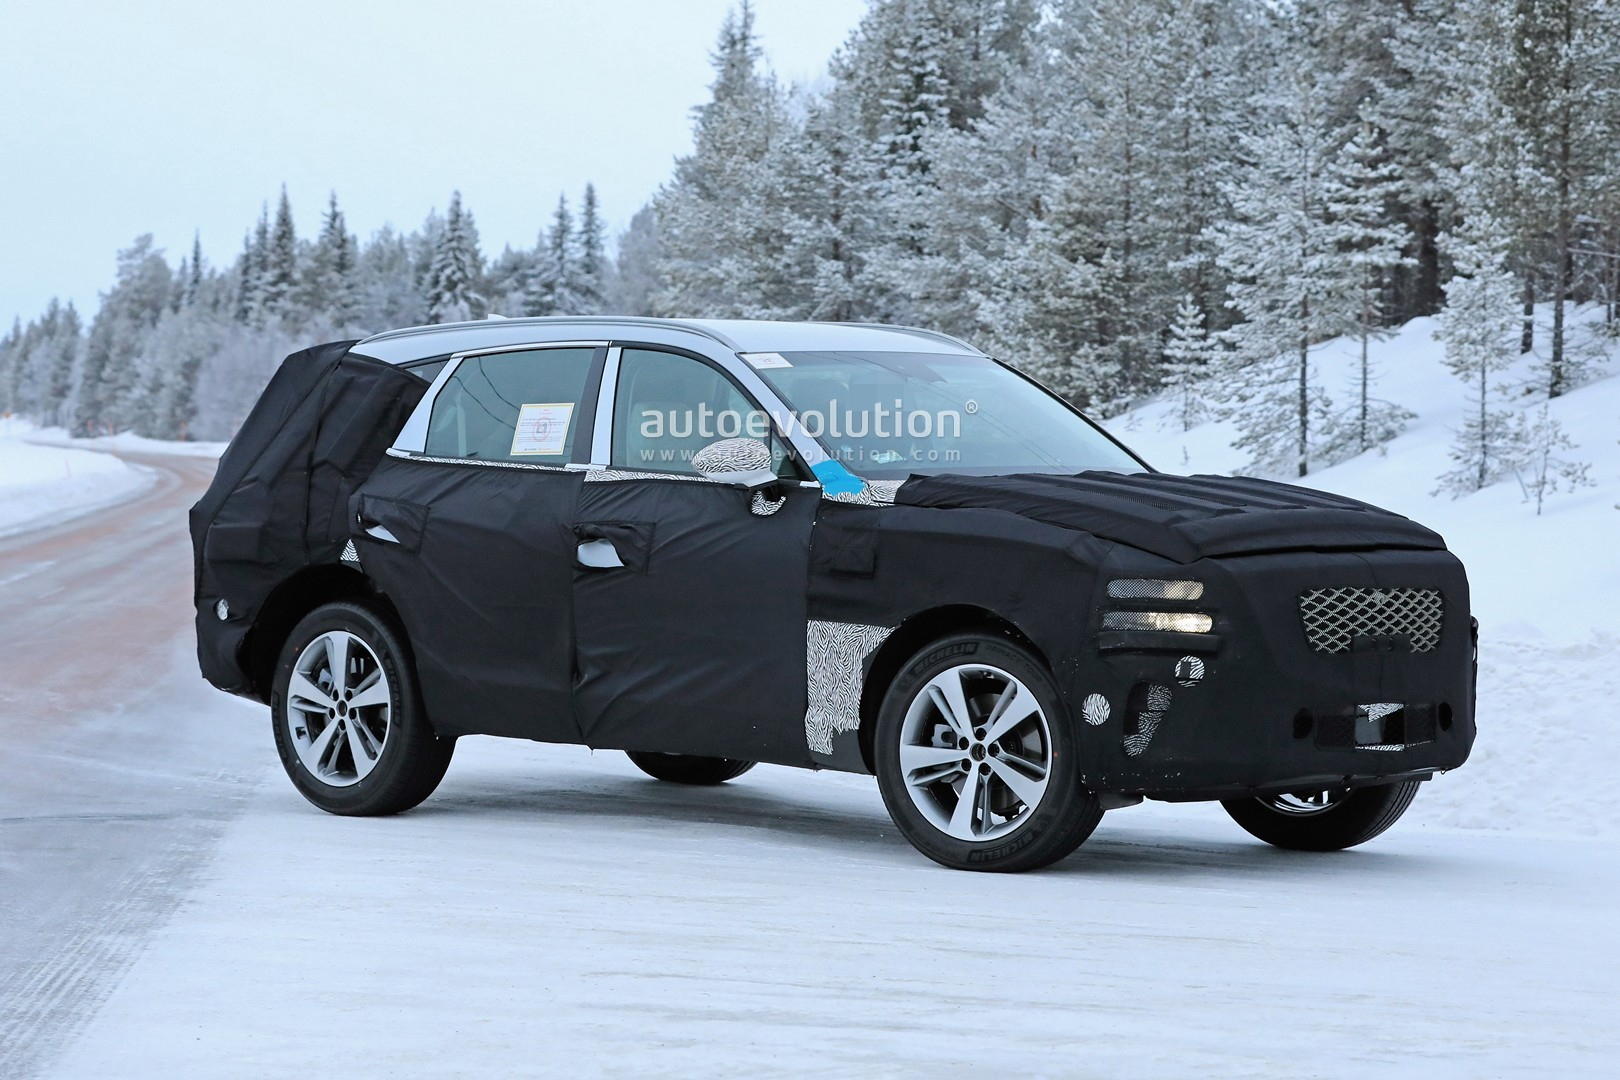 2019 - [Genesis] SUV GV80 - Page 2 Genesis-gv80-suv-prototype-makes-production-spyshots-debut_6